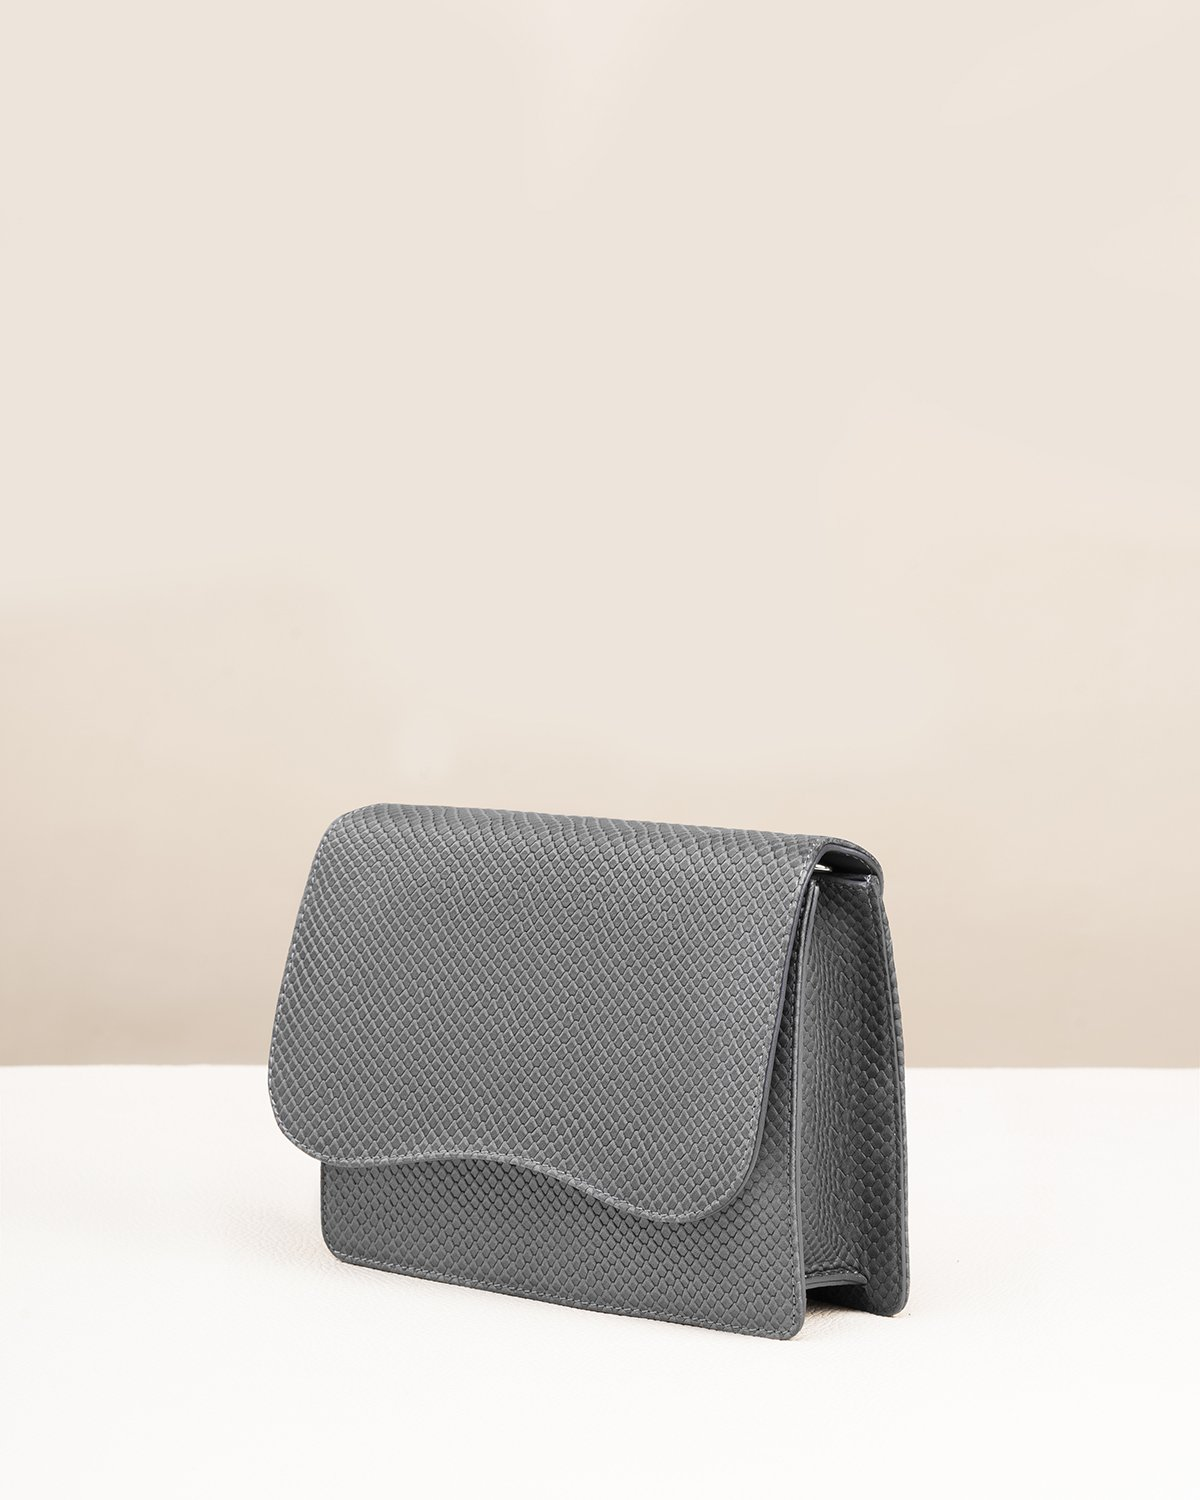 Kilesa italian grey leather shoulderbag